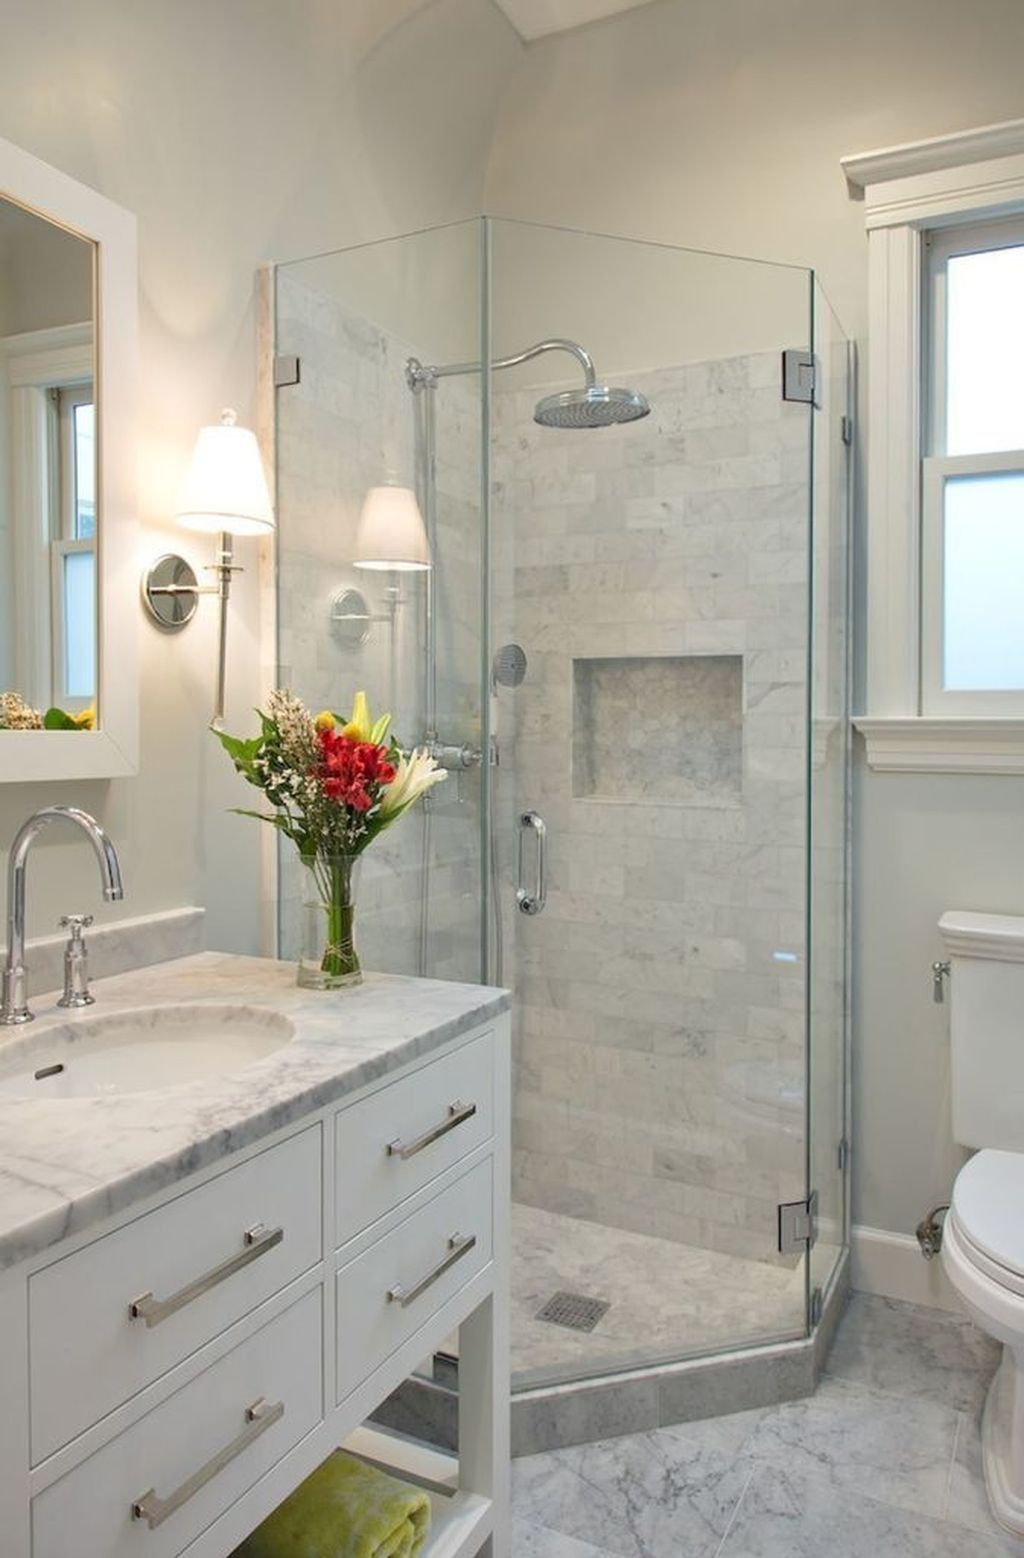 There Are Many Different Ways You Can Do A Small Bathroom Remodel